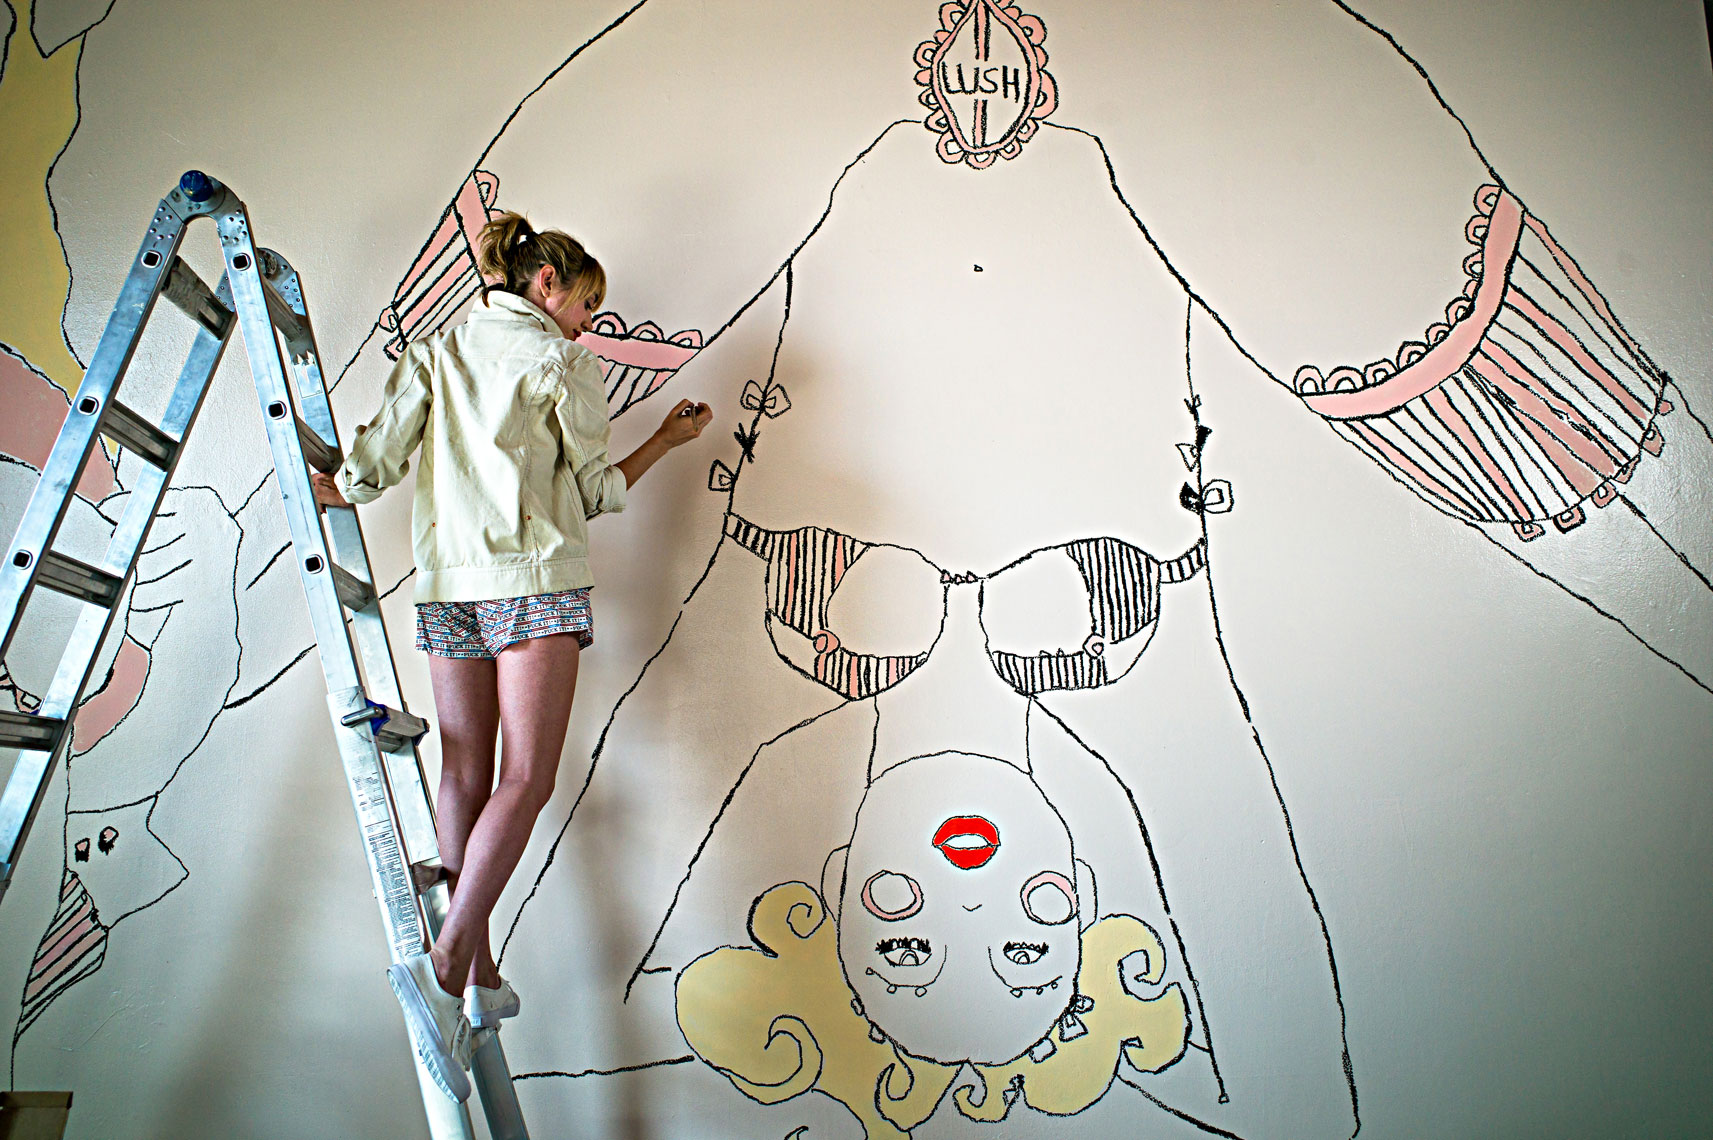 Natalie Krim, artist, Boyle Heights, California